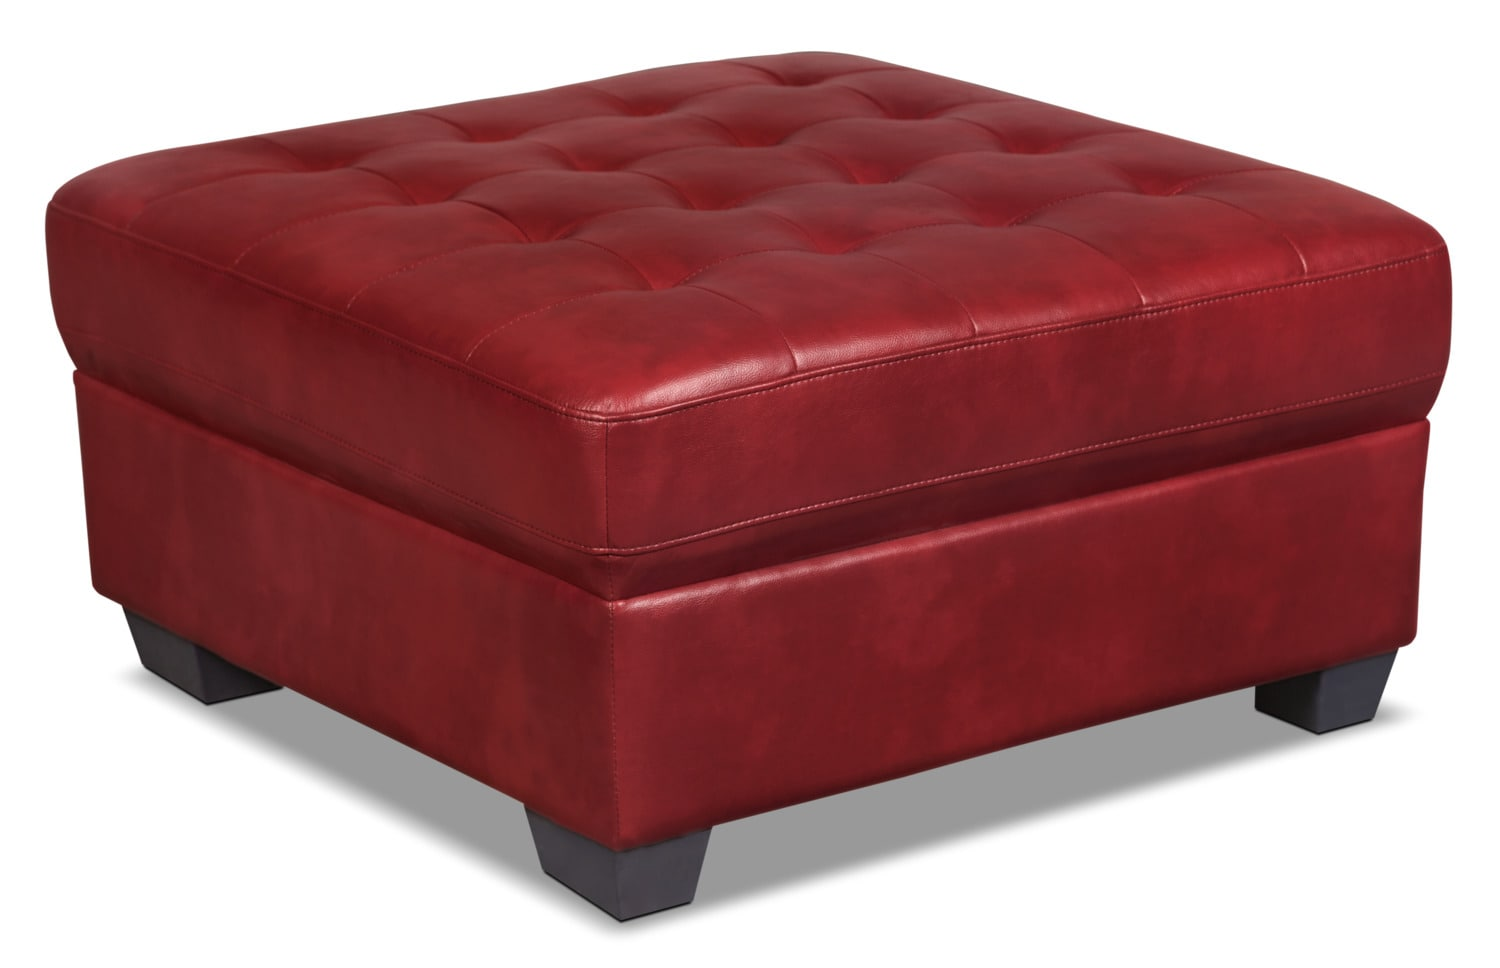 Tobi Leather-Look Fabric Ottoman – Red